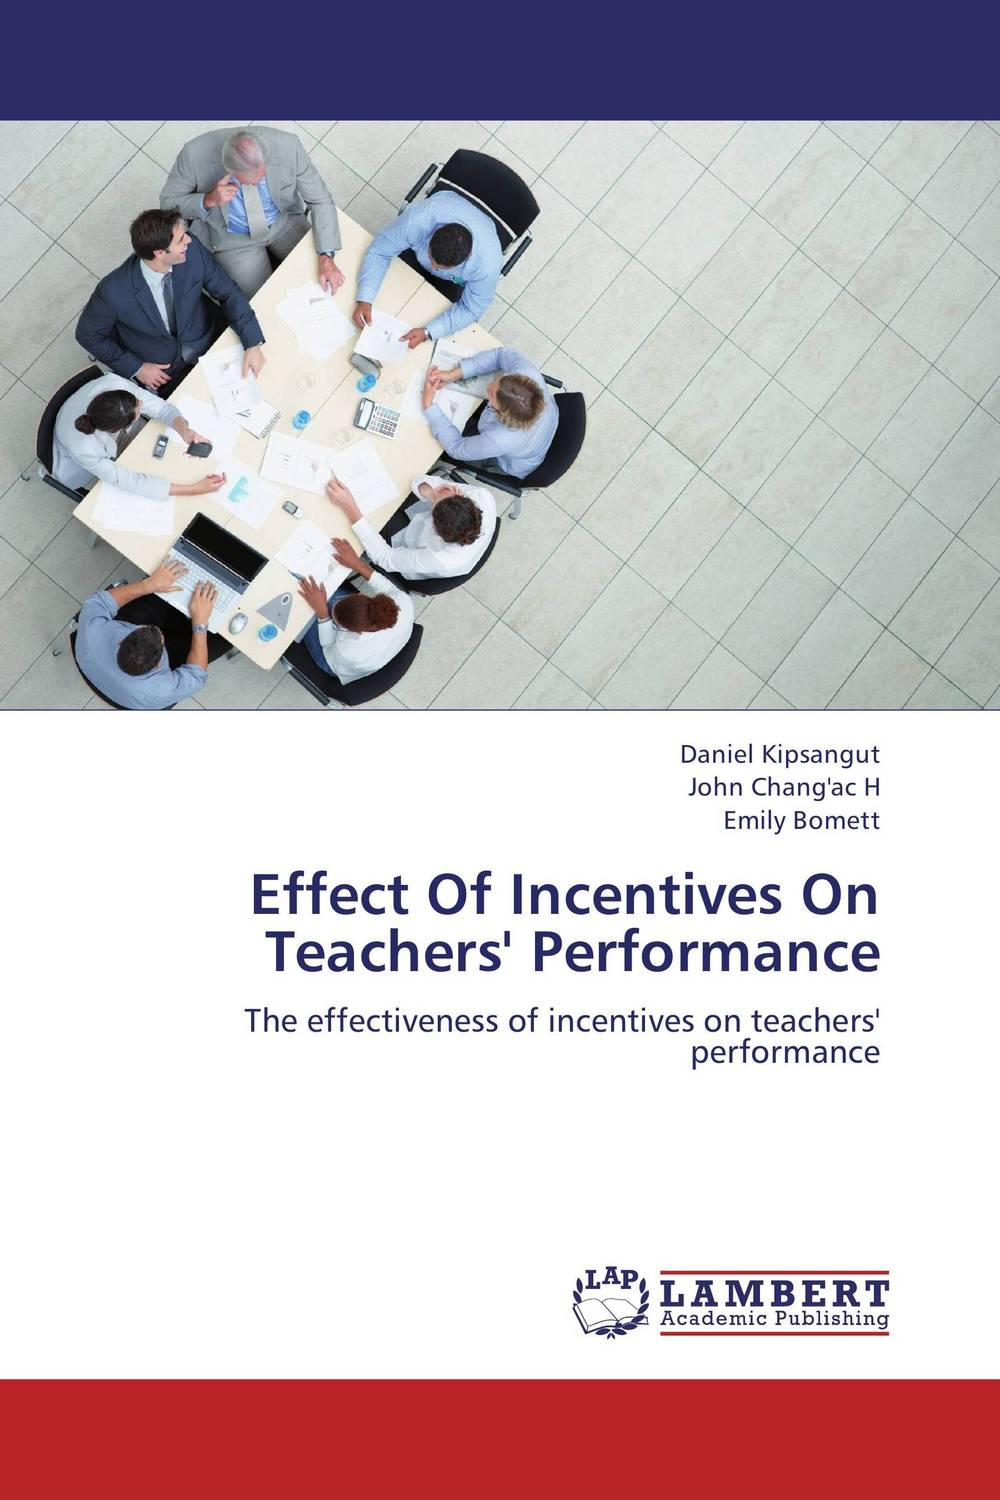 Effect Of Incentives On Teachers' Performance university management in practice and performance evaluation